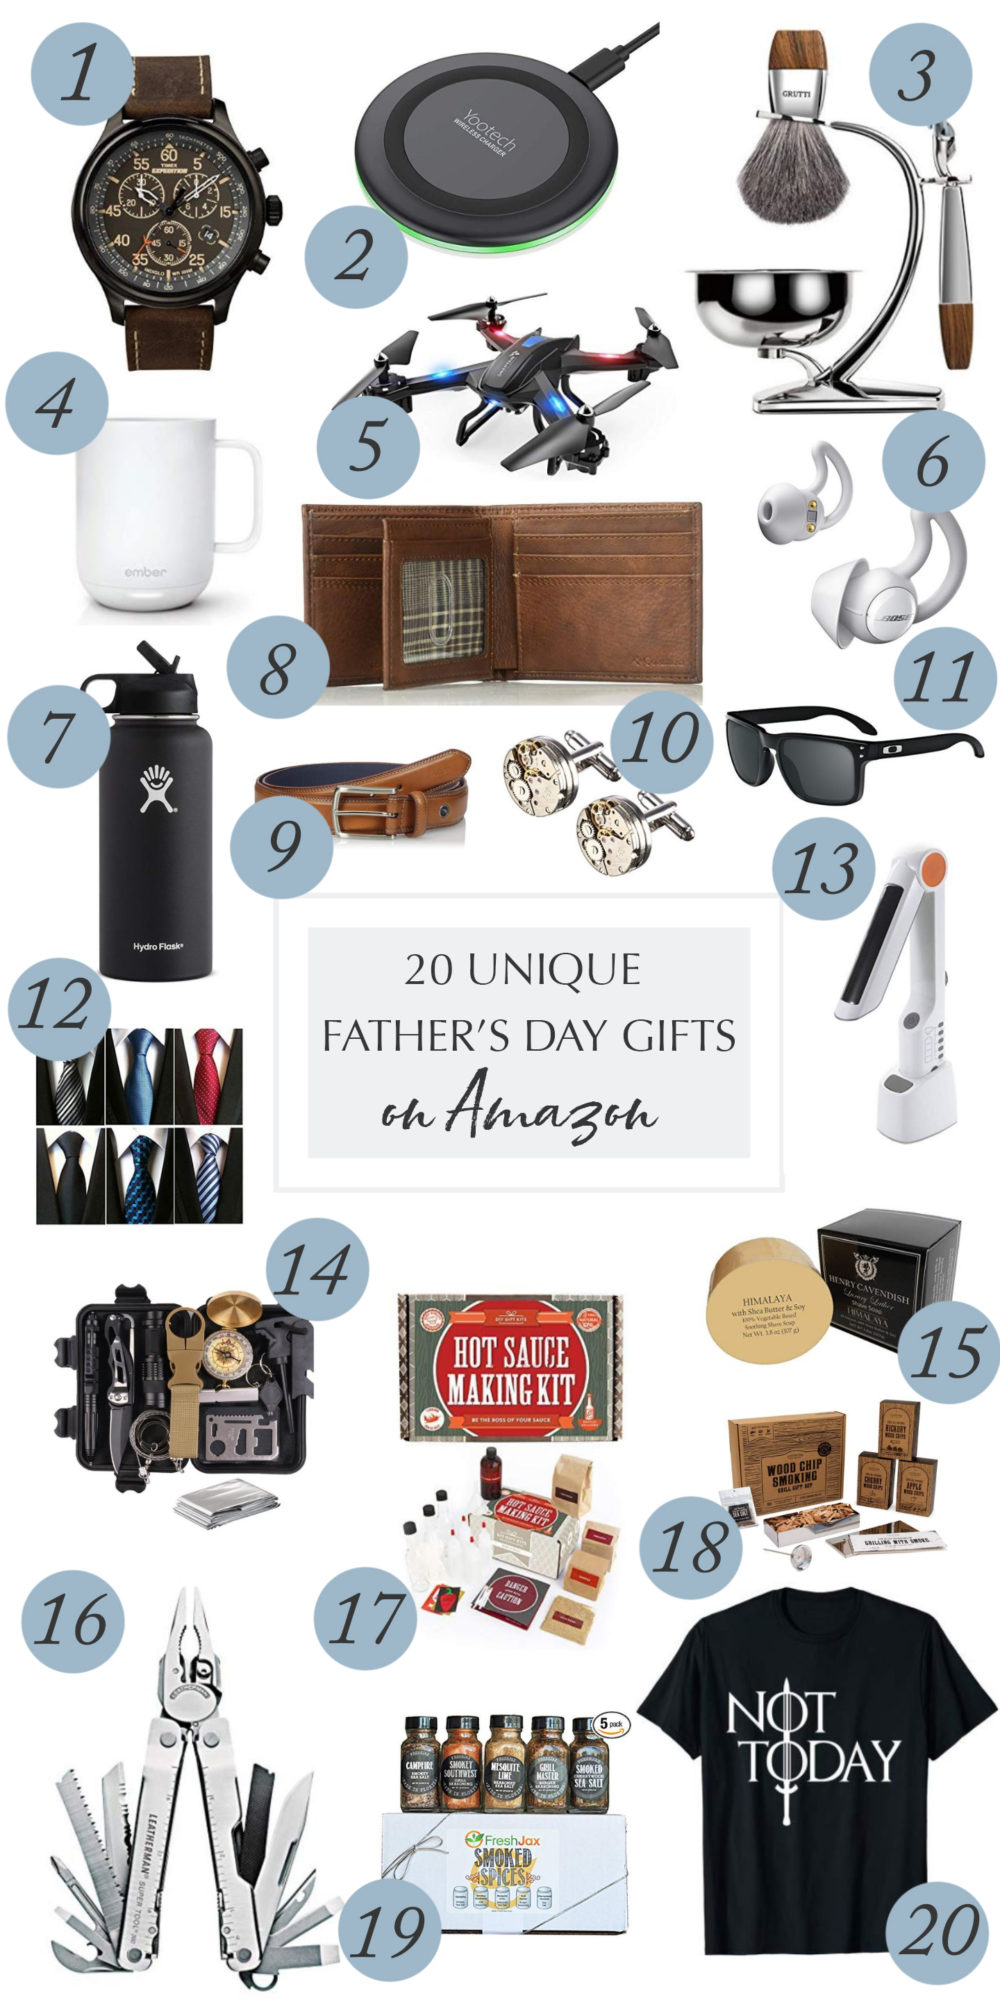 Father's Day Gift Idea's | Father's Day Gifts on Amazon | Gifts for Dad